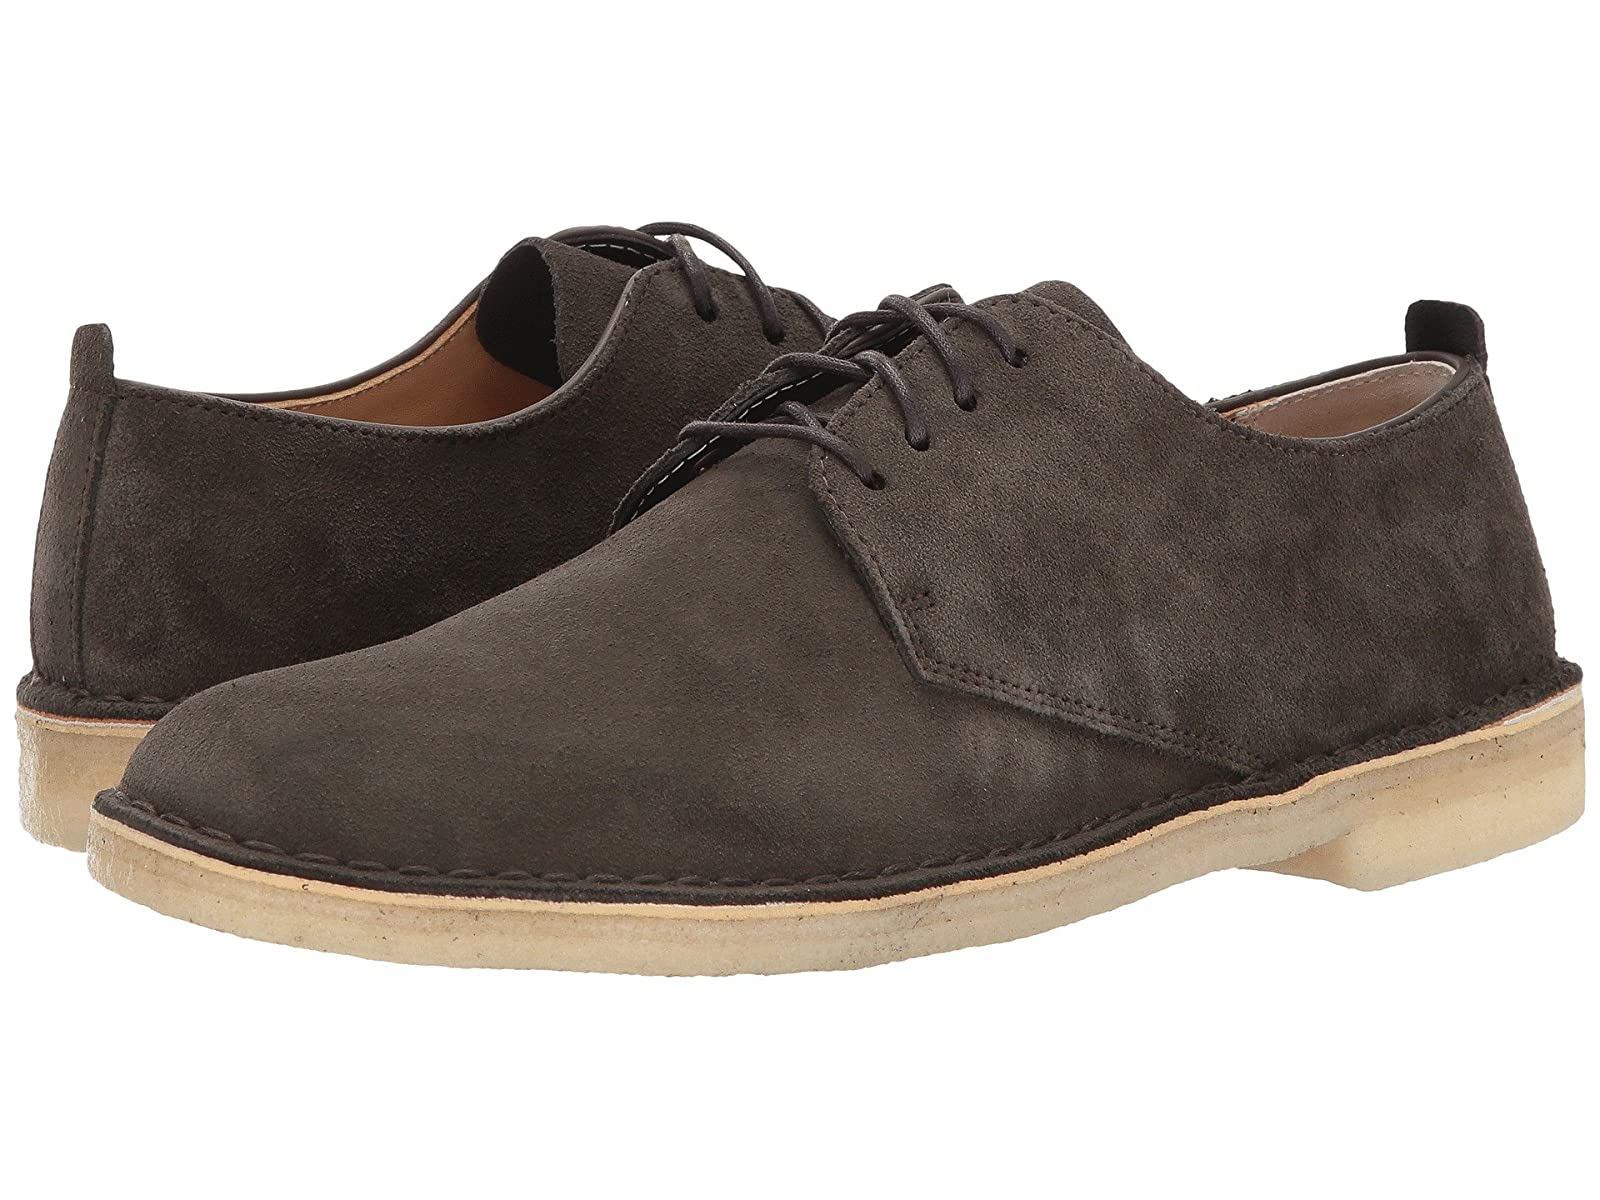 Clarks Desert LondonCheap and distinctive eye-catching shoes